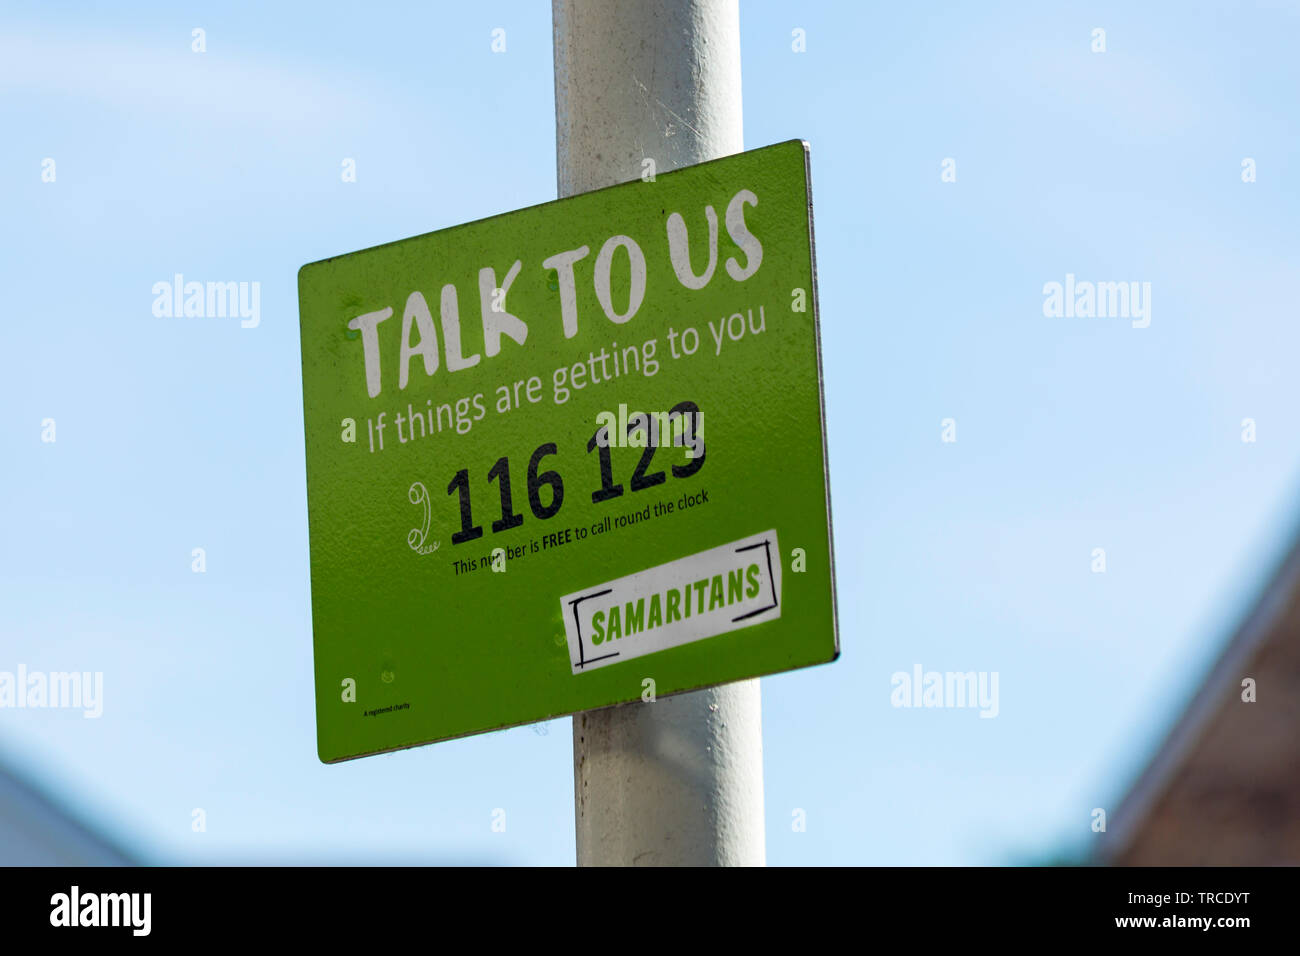 Talk to us if things are getting to you Samaritans sign on post at railway train station at Bournemouth, Dorset UK in June Stock Photo